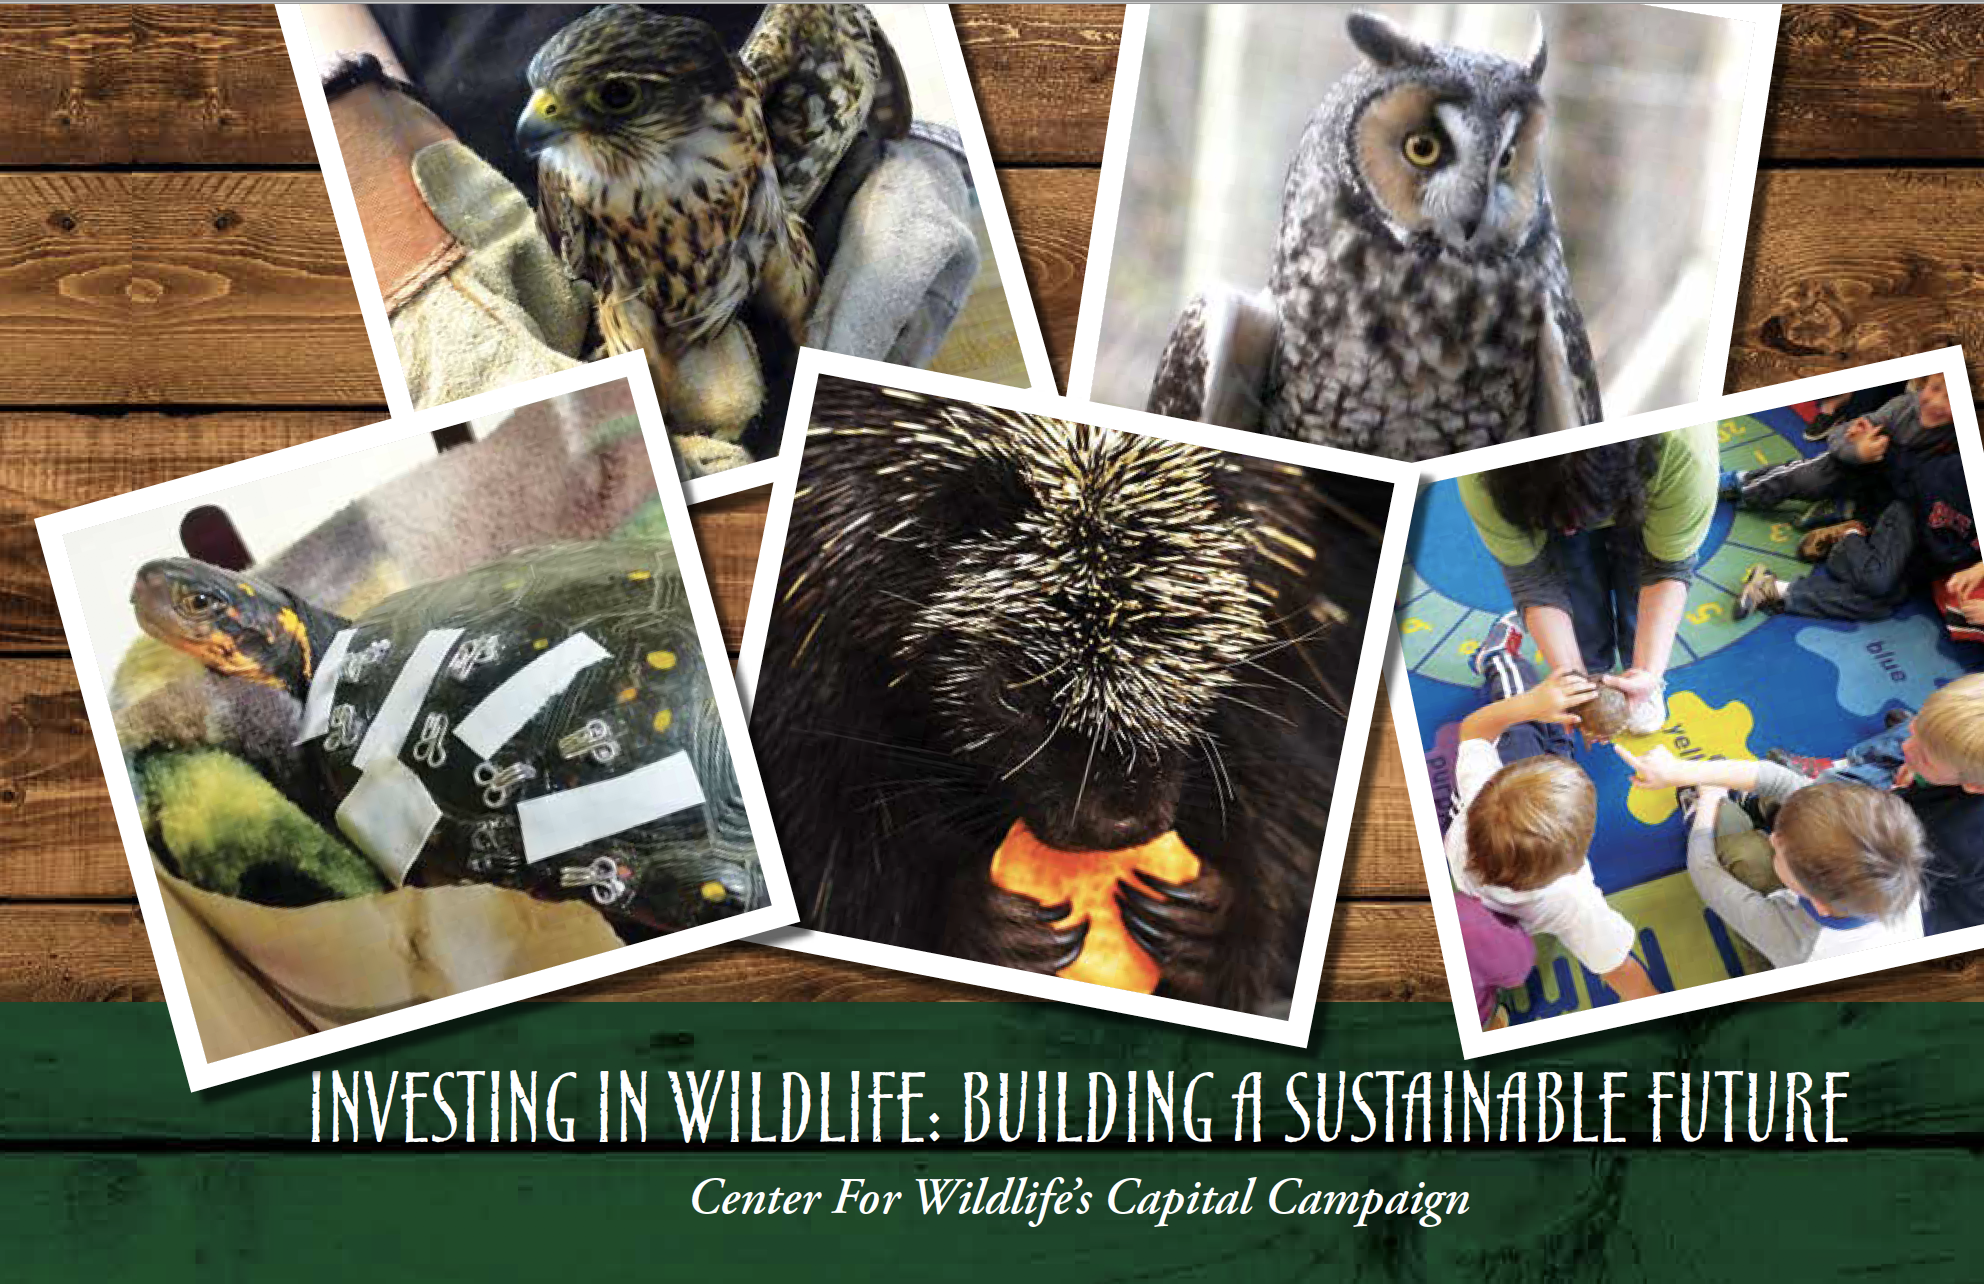 Center For Wildlife- Capital Campaign Materials